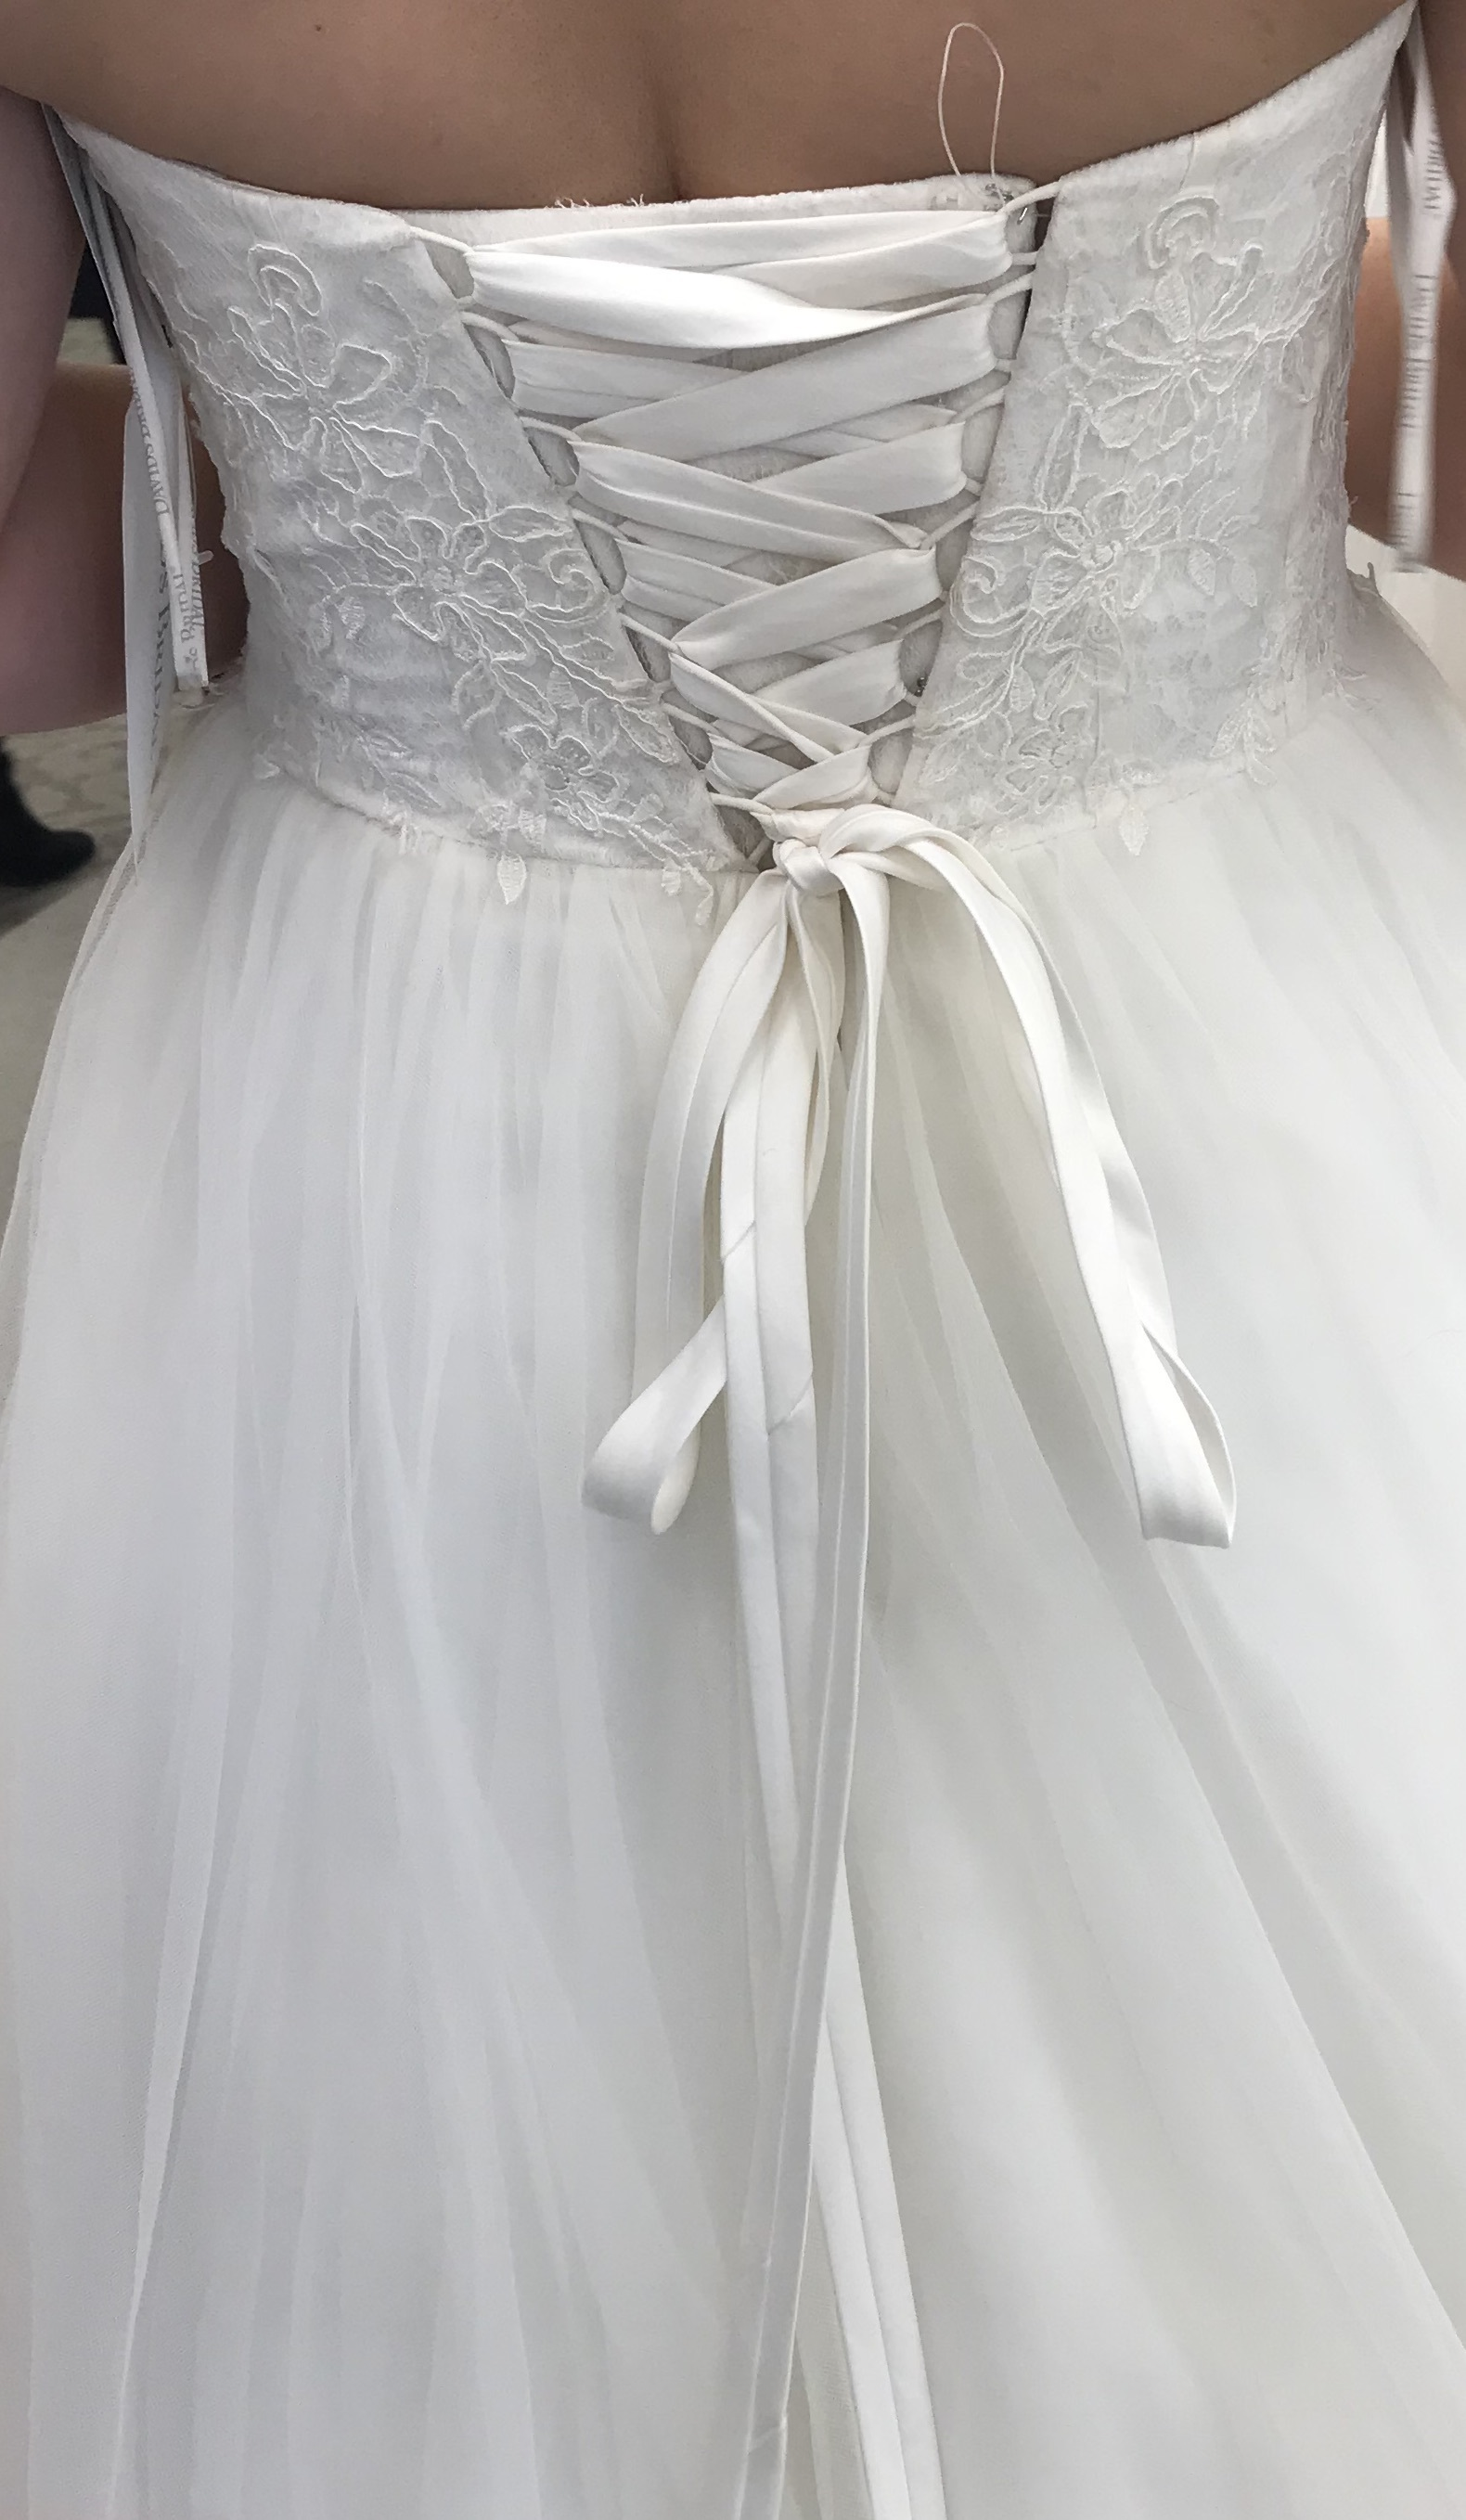 David's bridal - WG3633 size 8 - $500 - (9% OFF)